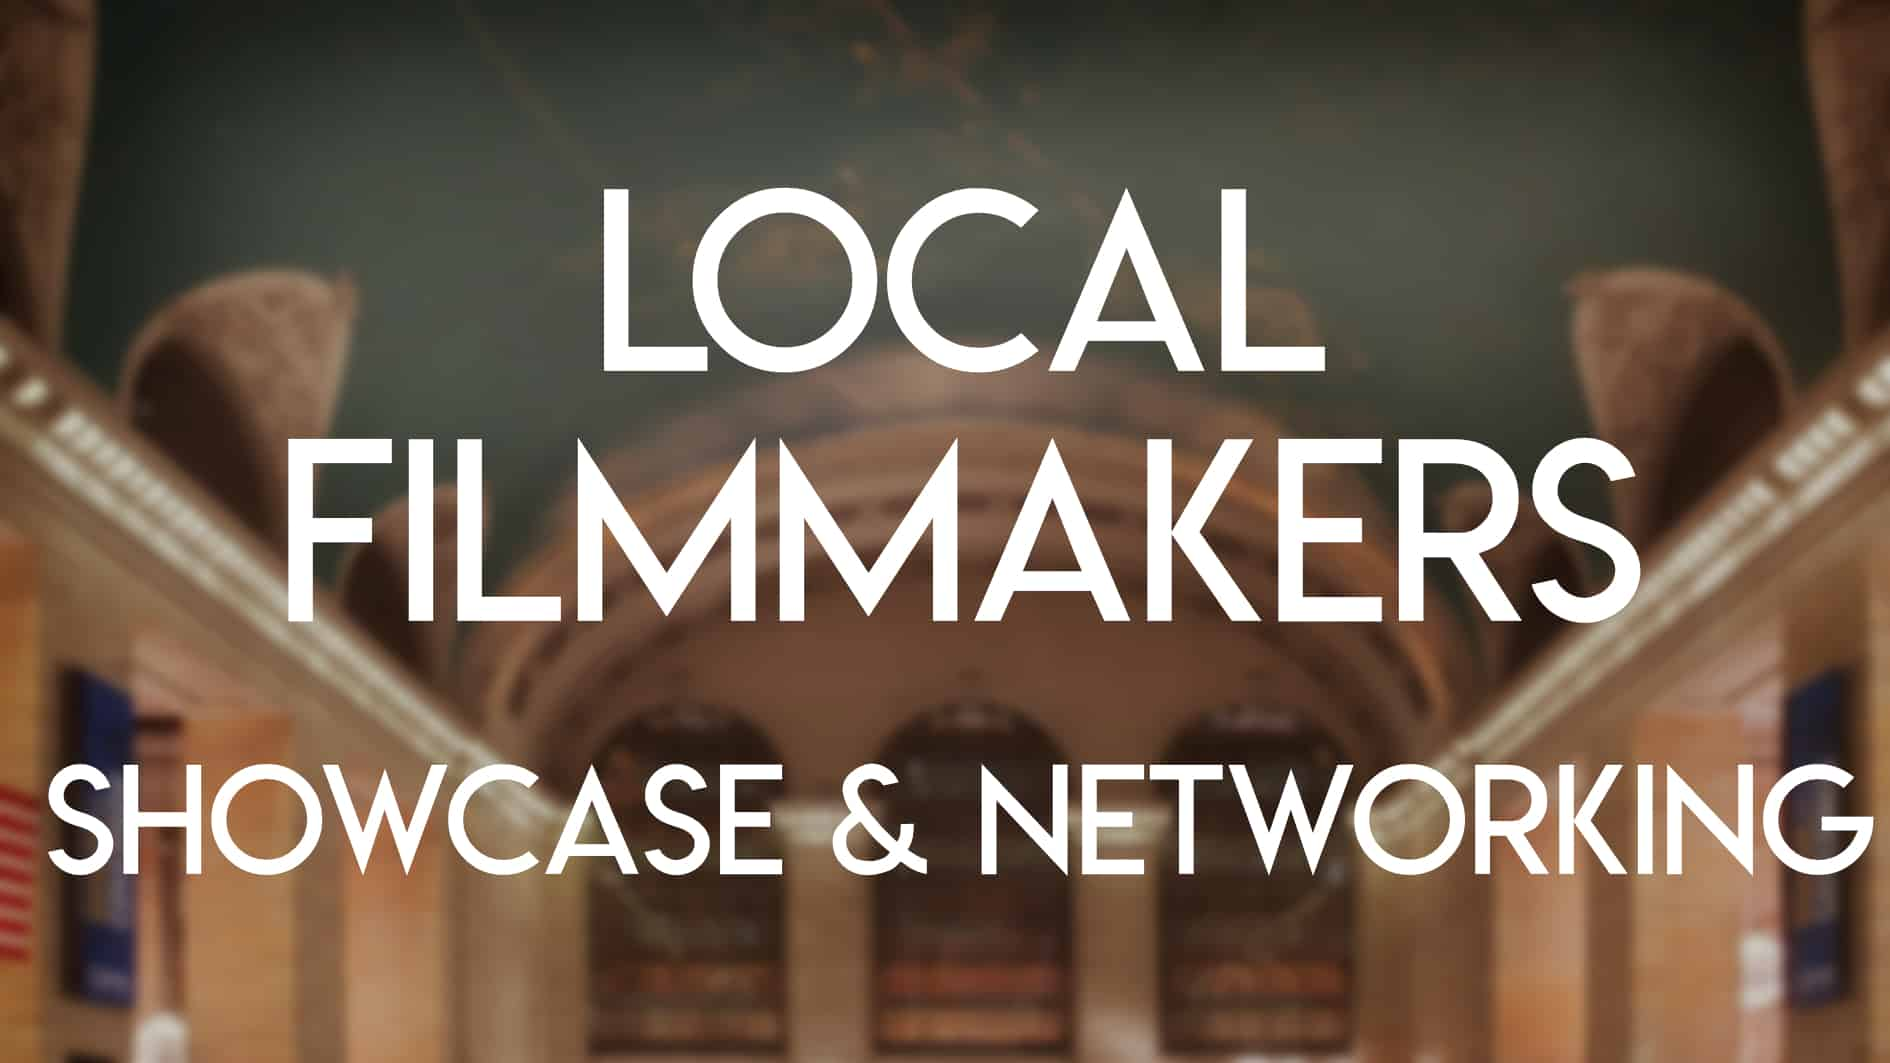 New York Lift-Off Film Festival 2018 - local filmmakers showcase & networking